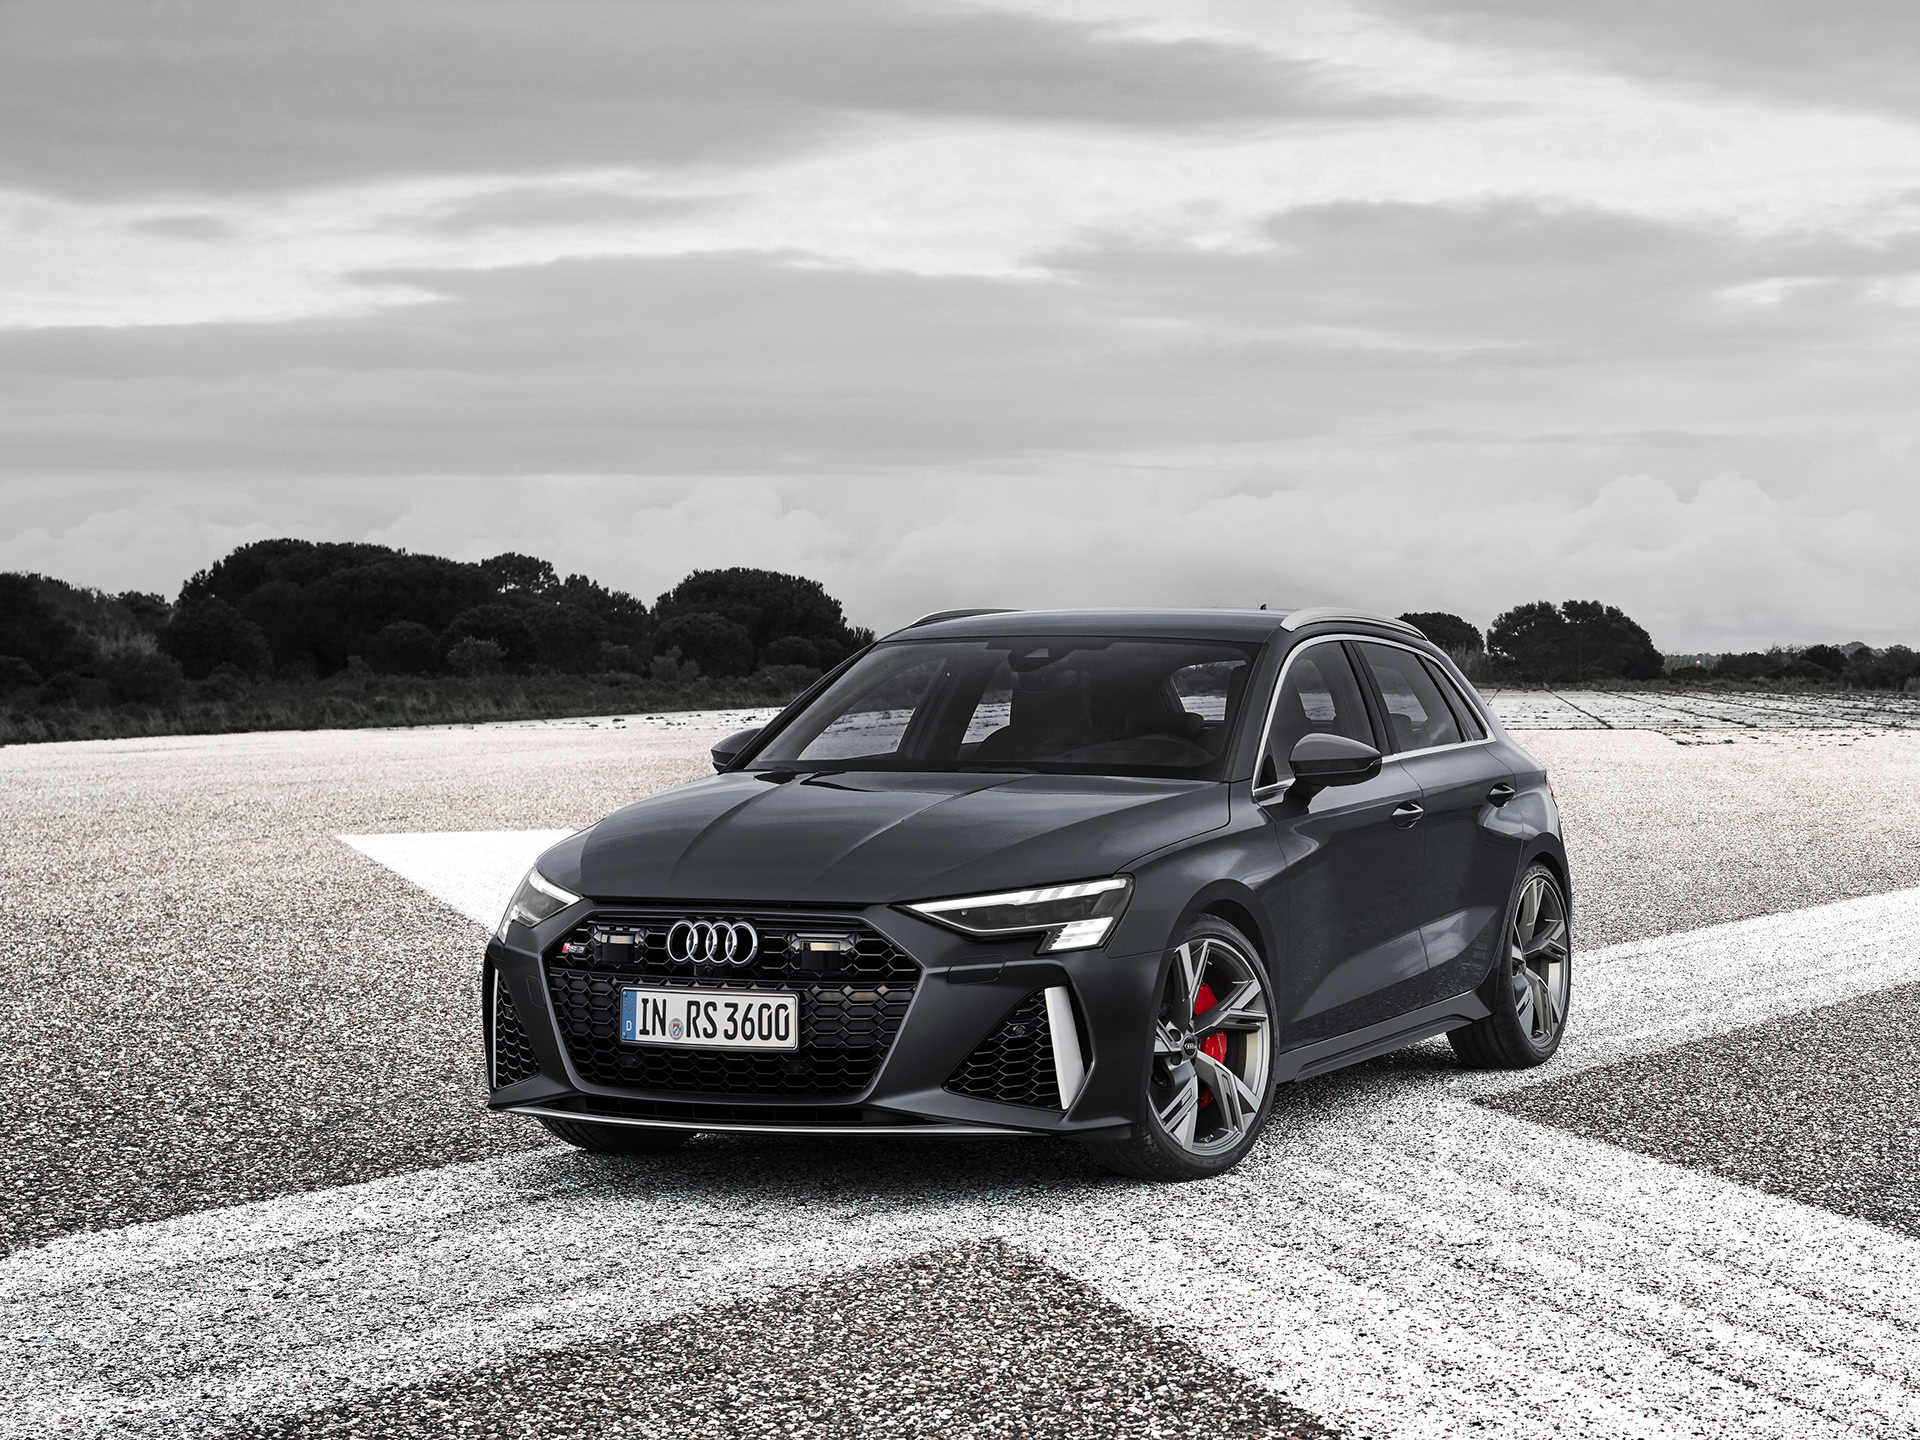 2022-audi-rs3-clean-rendering-reveals-the-next-super-hatch-141841_1